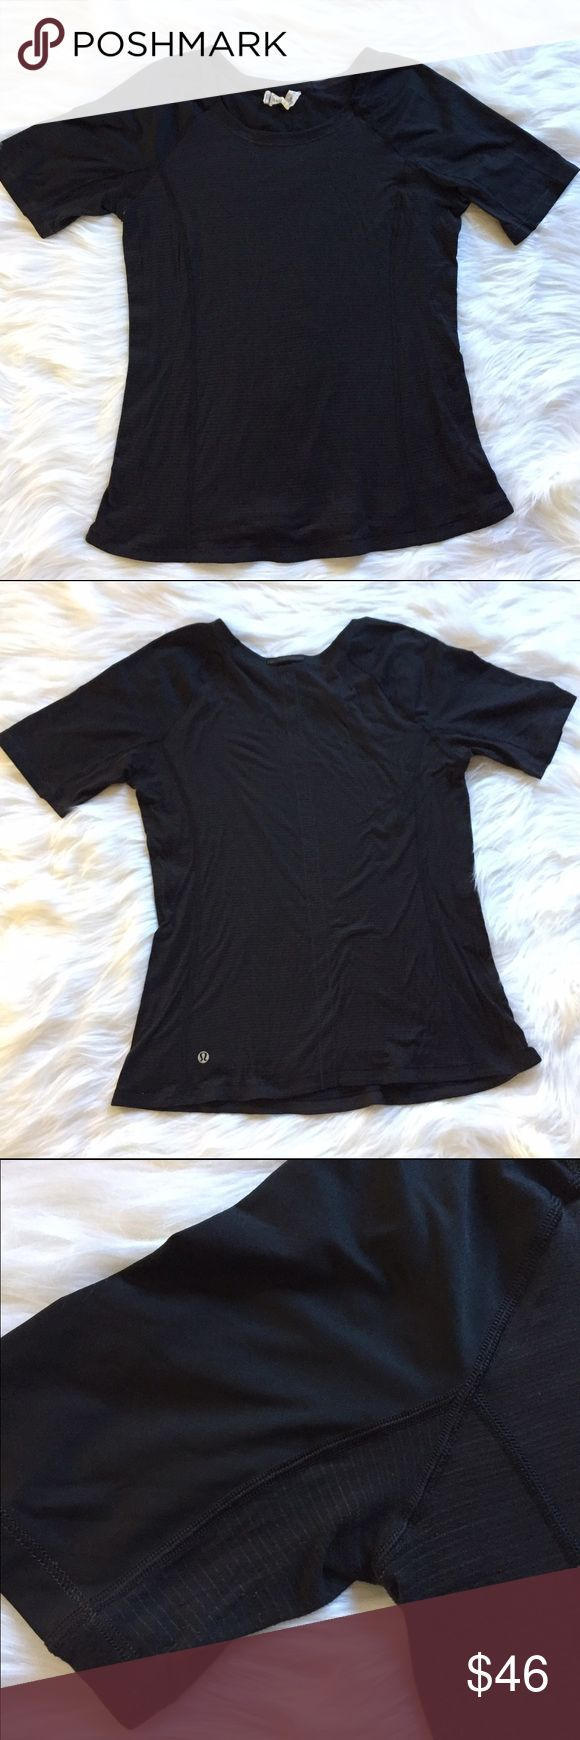 "Lululemon Athletica Black Striped Short Sleeve Top •lululemon athletica Black Short Sleeve Top •Women's Size 10 •Faint metallic stripes •lululemon logo on back lower left •slight scoop neck  •All measurements are approximate: 25"" length, 18"" armpit to armpit, 4.5"" armpit to end of sleeve •Body: 92% nylon, 5% x-static silver nylon, 3% spandex // contrast 1: 87% nylon, 13% lycra // contrast 2: 86% recycled polyester, 14% spandex lululemon athletica Tops Tees - Short Sleeve"